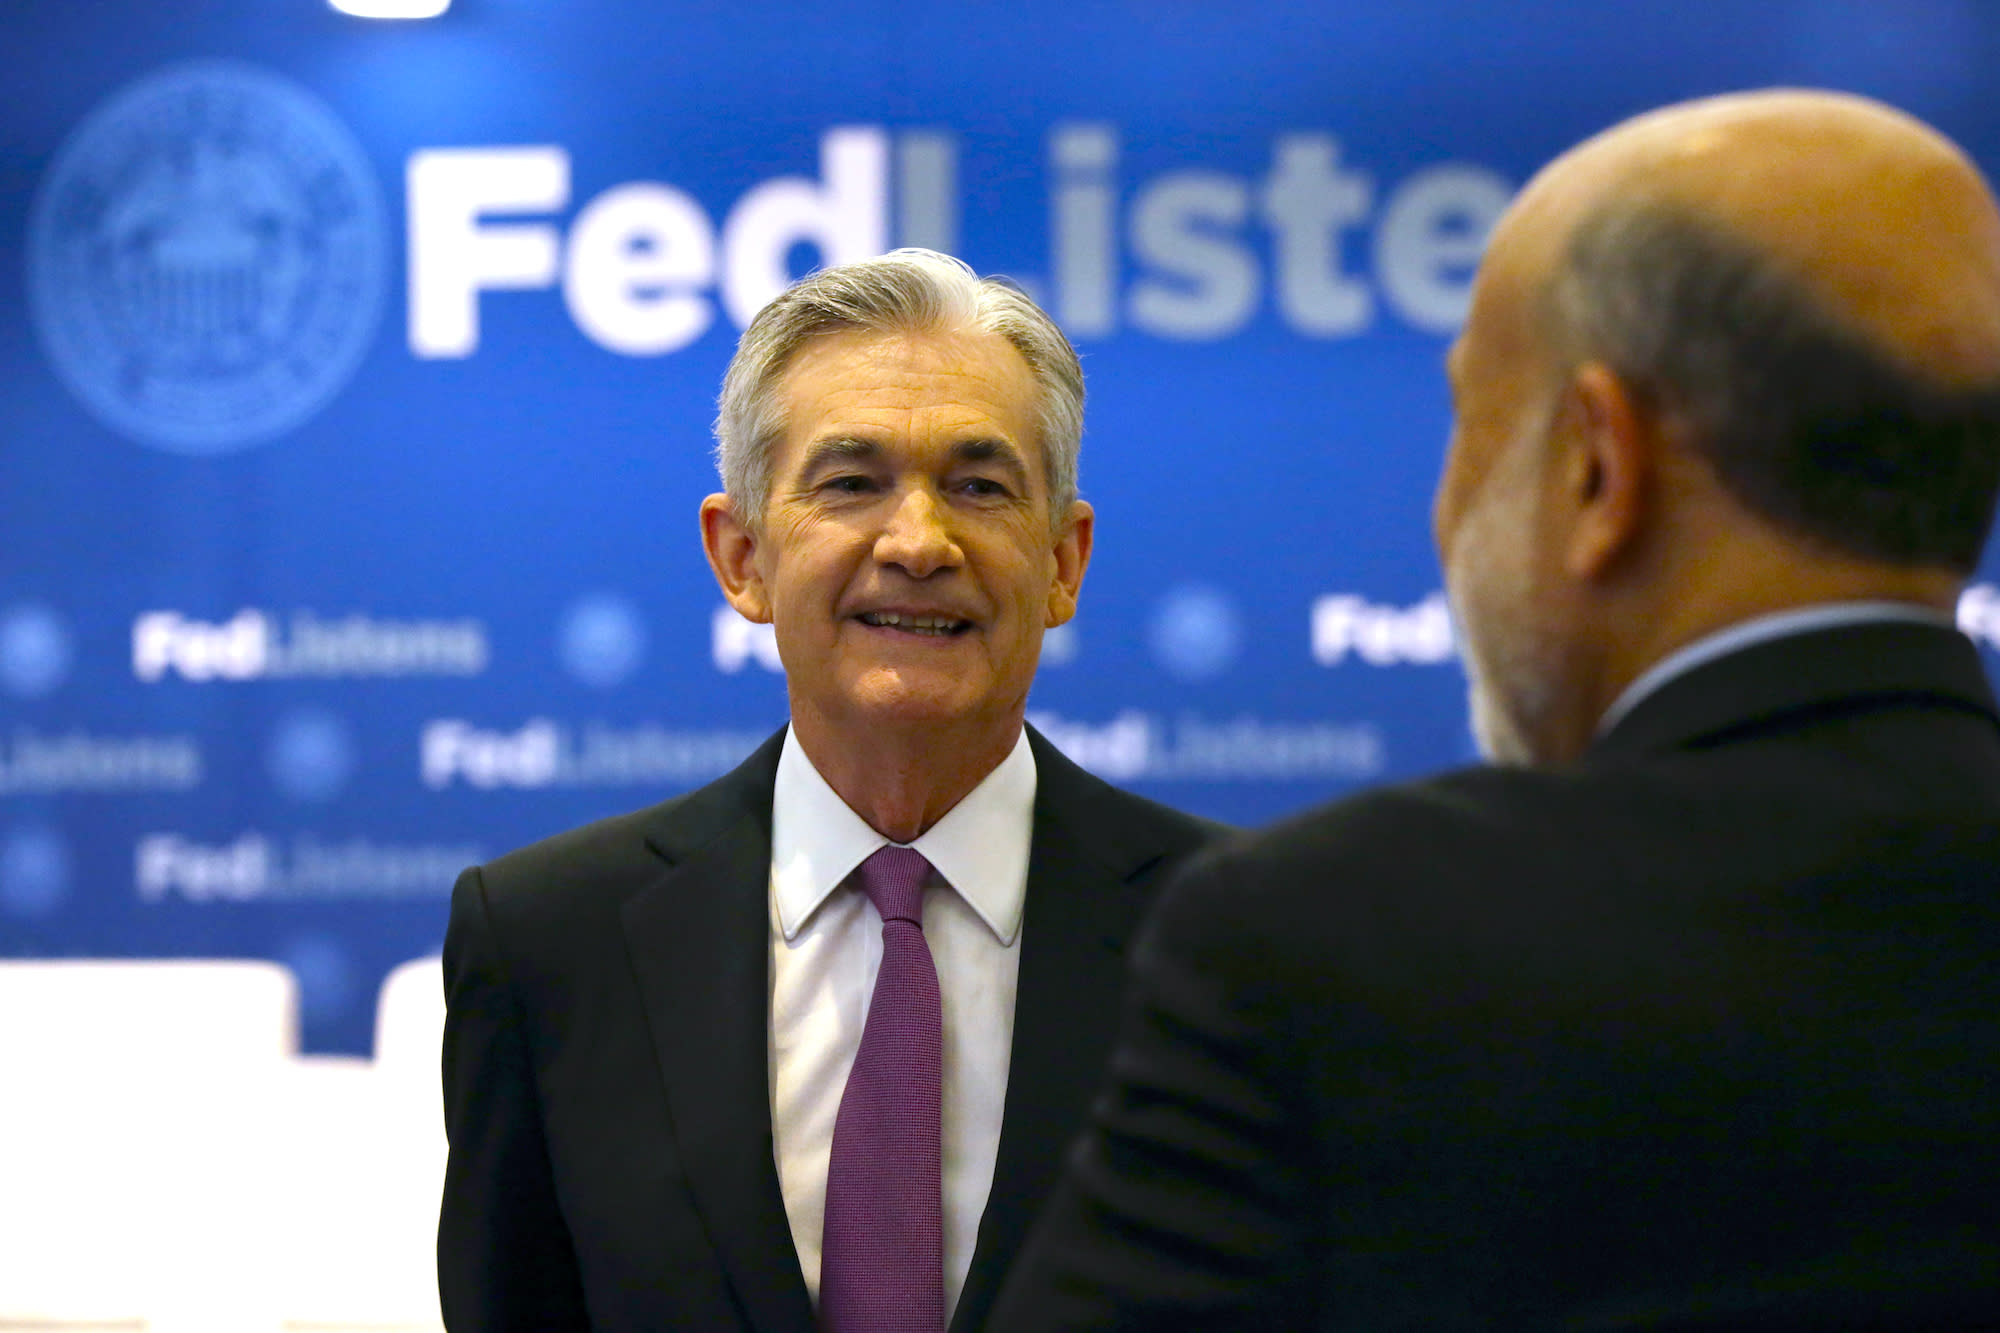 America meets Fed Chair Jay Powell: Morning Brief